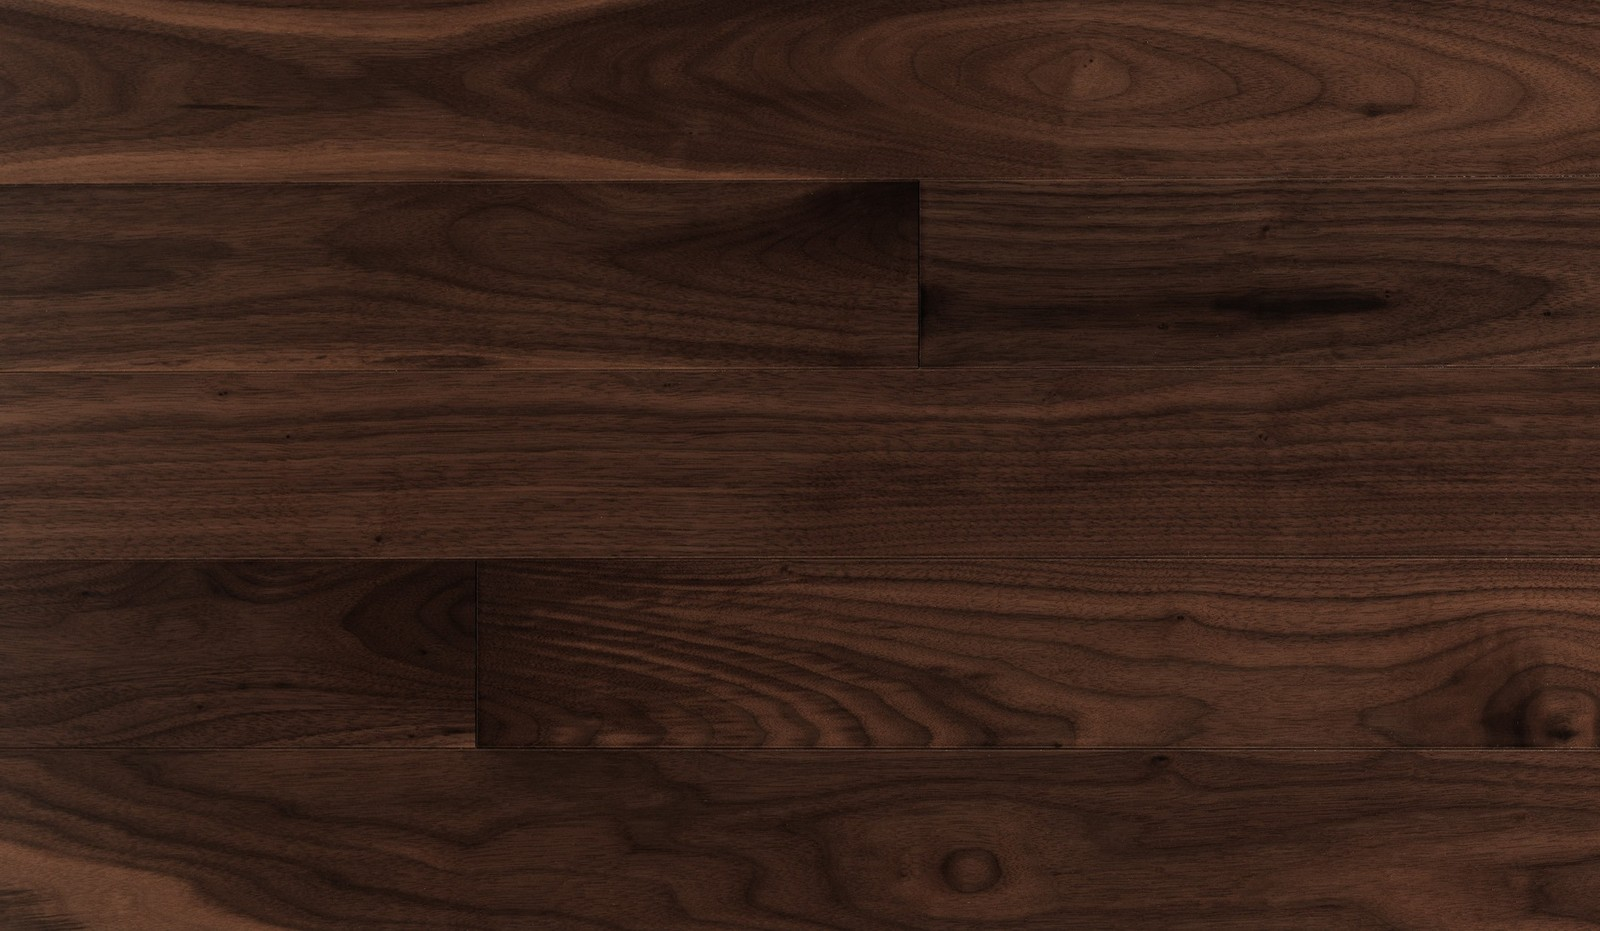 Walnut hardwood flooring images 100 hardwood flooring for 12th floor on 100 floors